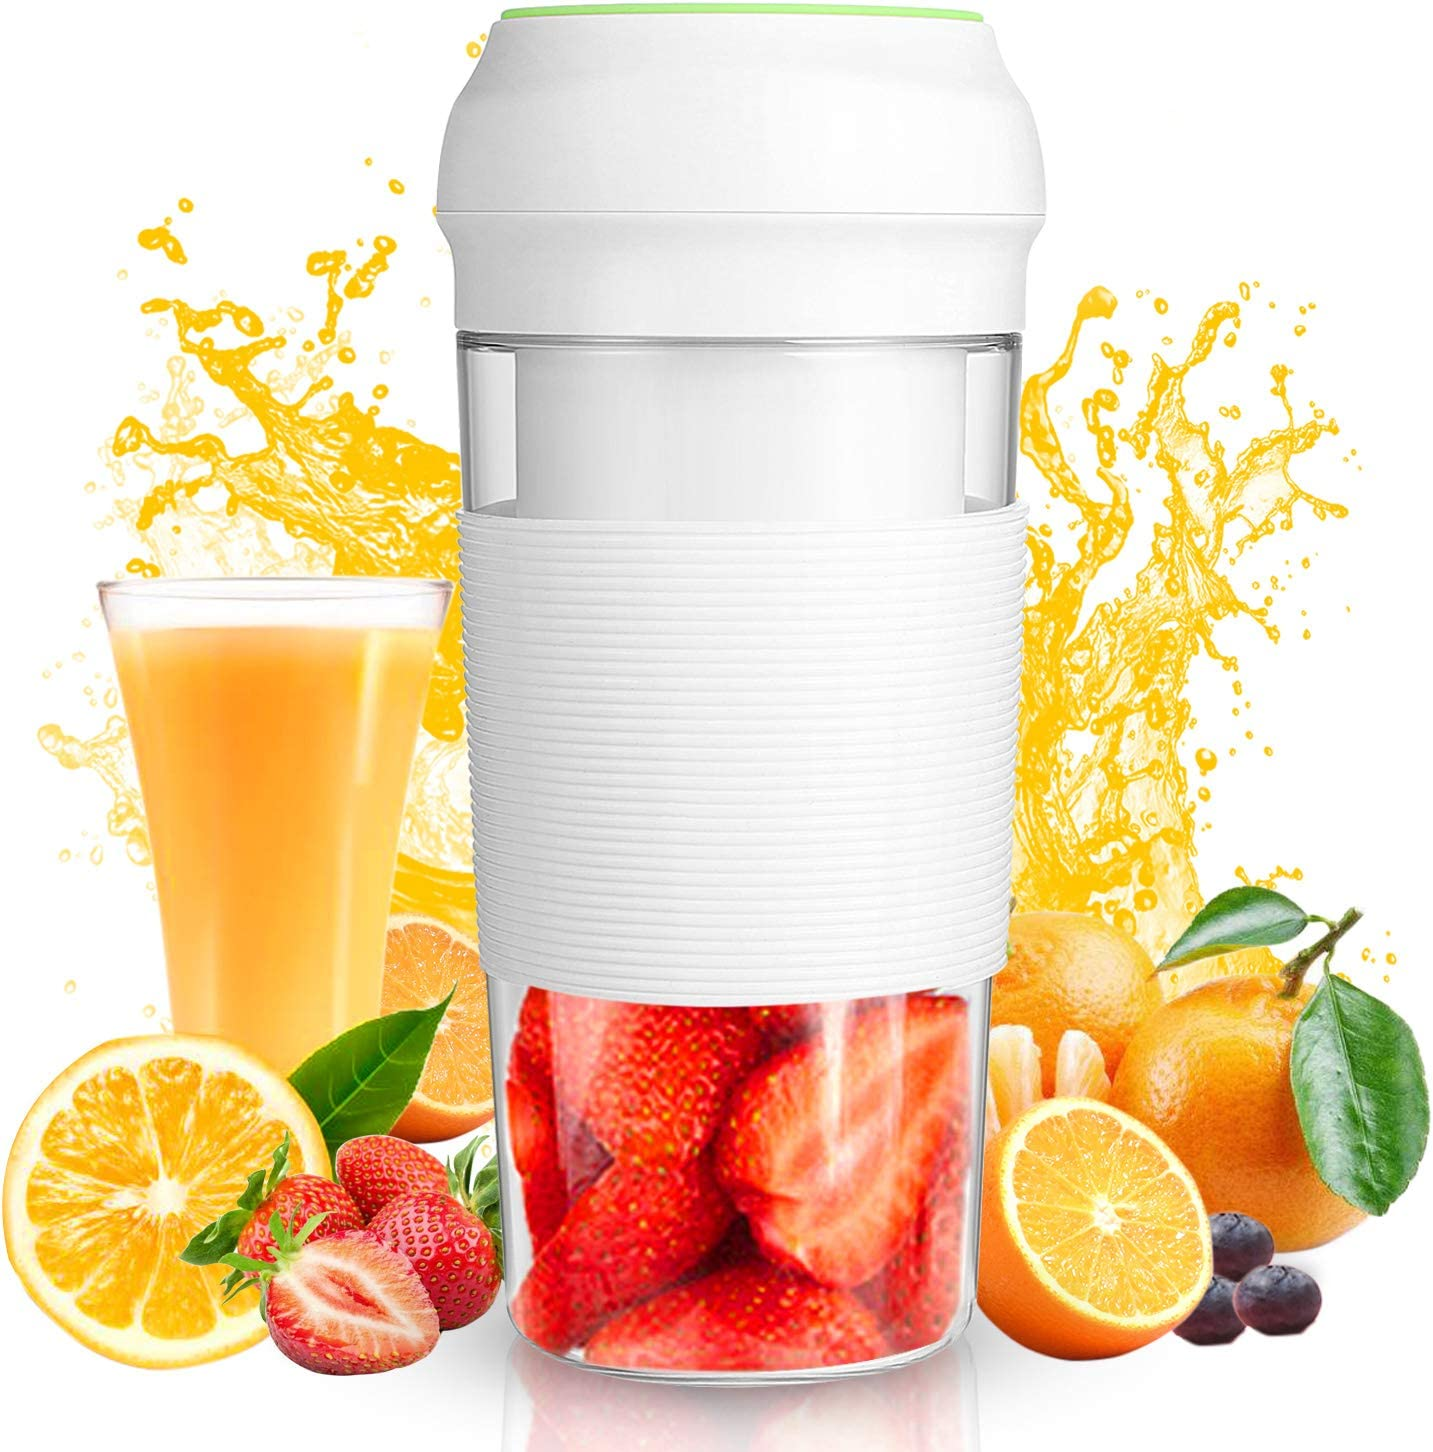 Portable Blender Juicer (12oz) Personal Blender Shakes and Smoothies Juicer Cup Smoothie Maker With 7.4V 3000mAh Rechargeable Battery Strong Power Ice Blender Mixer Baby Food Maker(BPA FREE)Home Office School Travel Sport Gym Outdoors